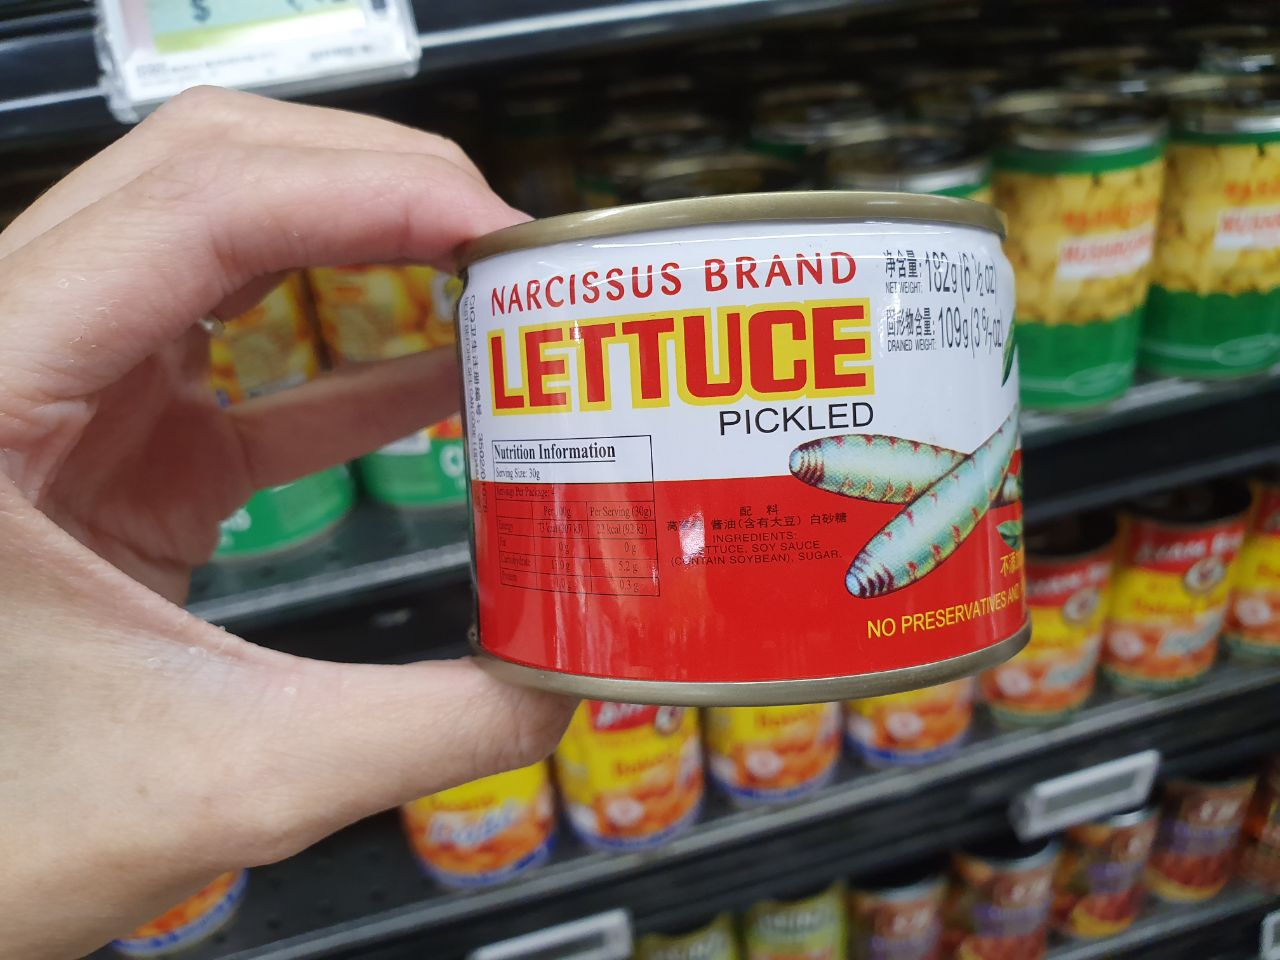 Canned food - pickled lettuce